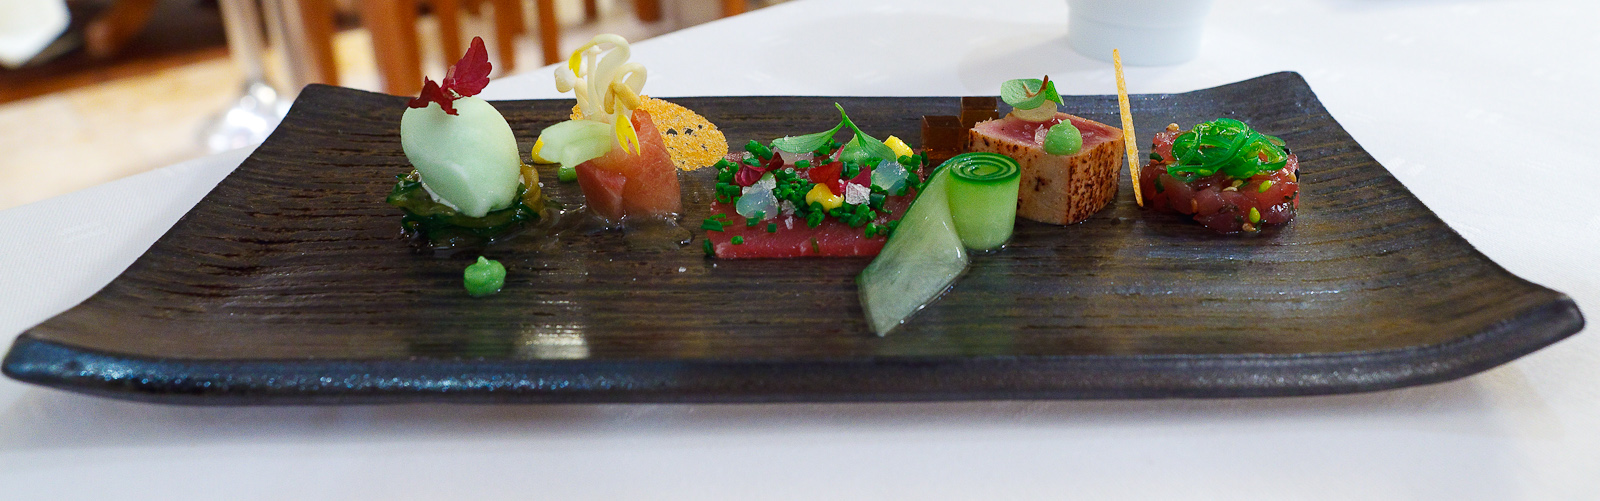 Amuse Bouche 9: Bluefin tuna with miso, soy, and cucumber